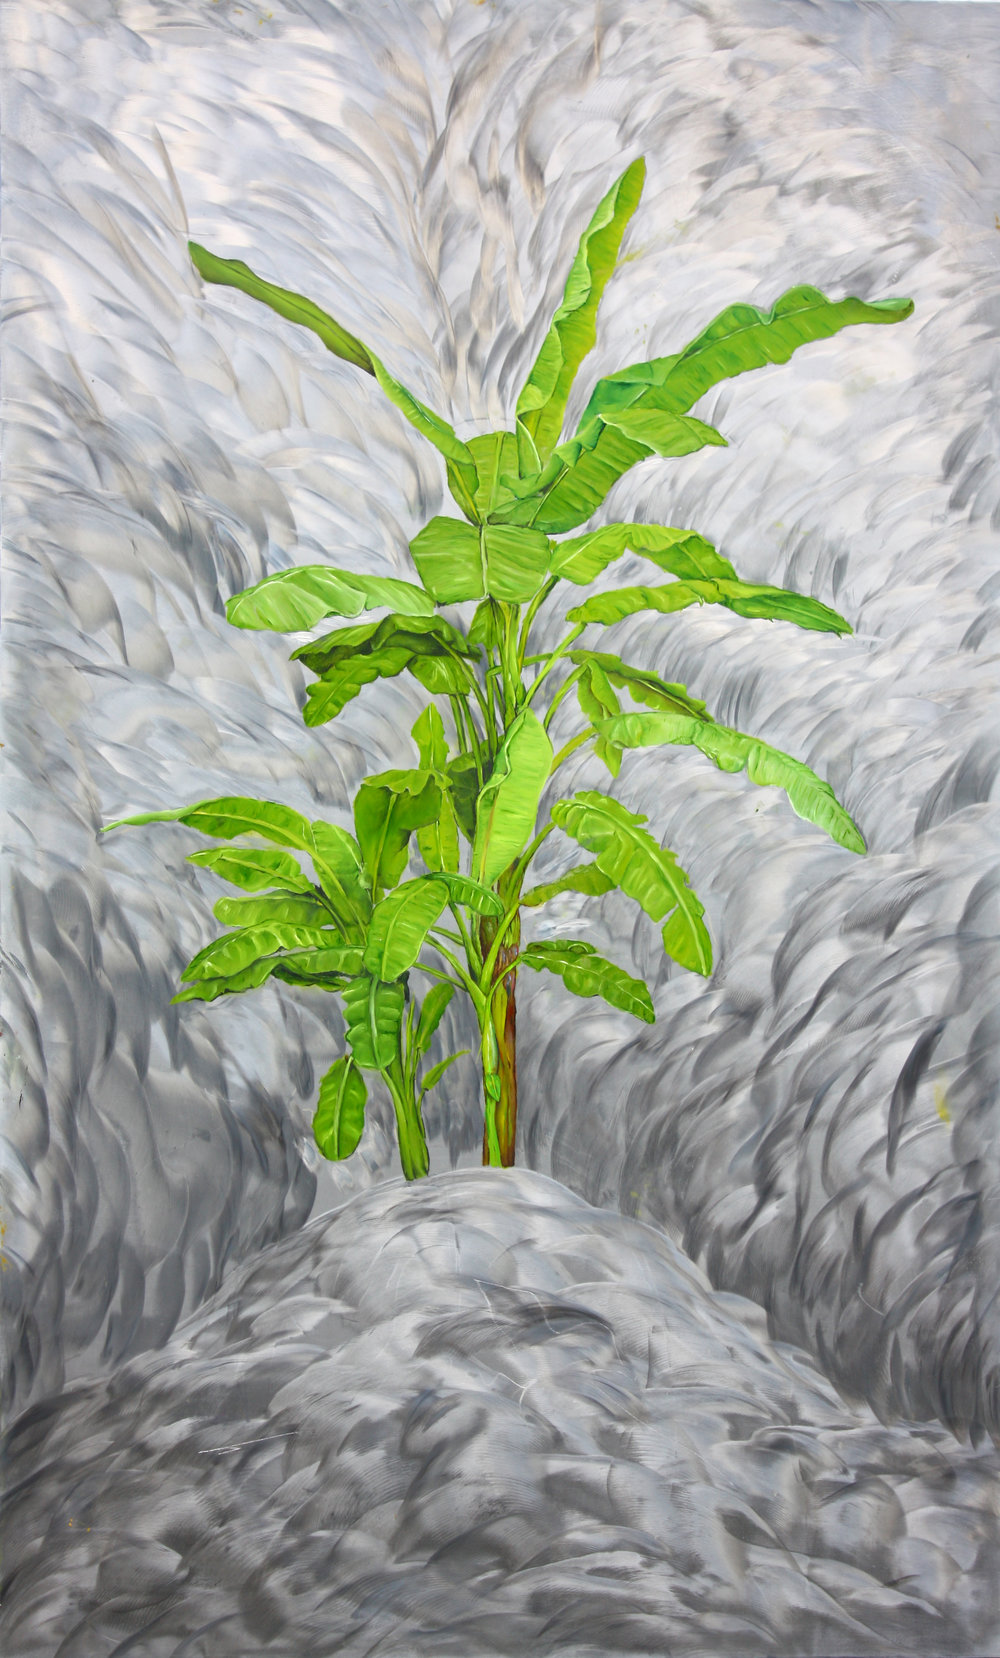 """Banana Tree"" by James Russell May, Oil on aluminum, 40x25in, 2017, $3000."